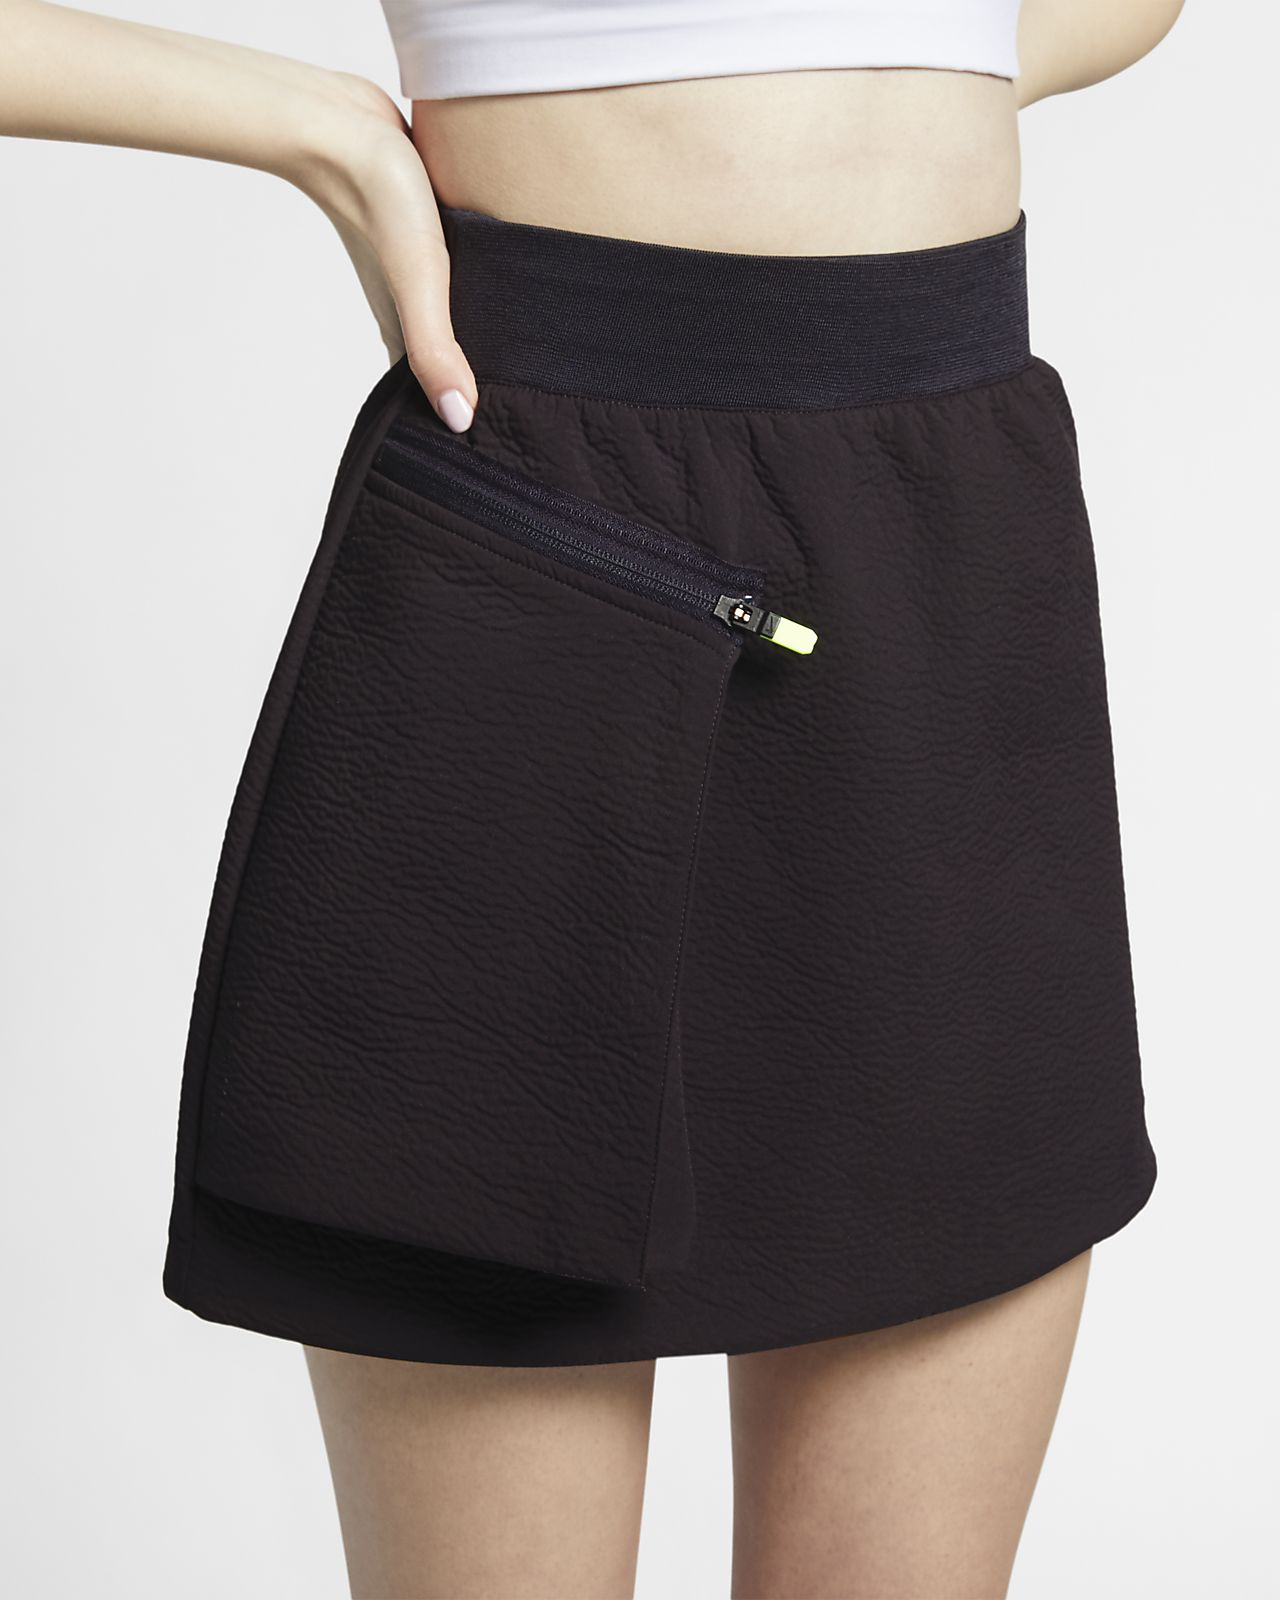 Nike Sportswear Tech Pack Women's Skirt